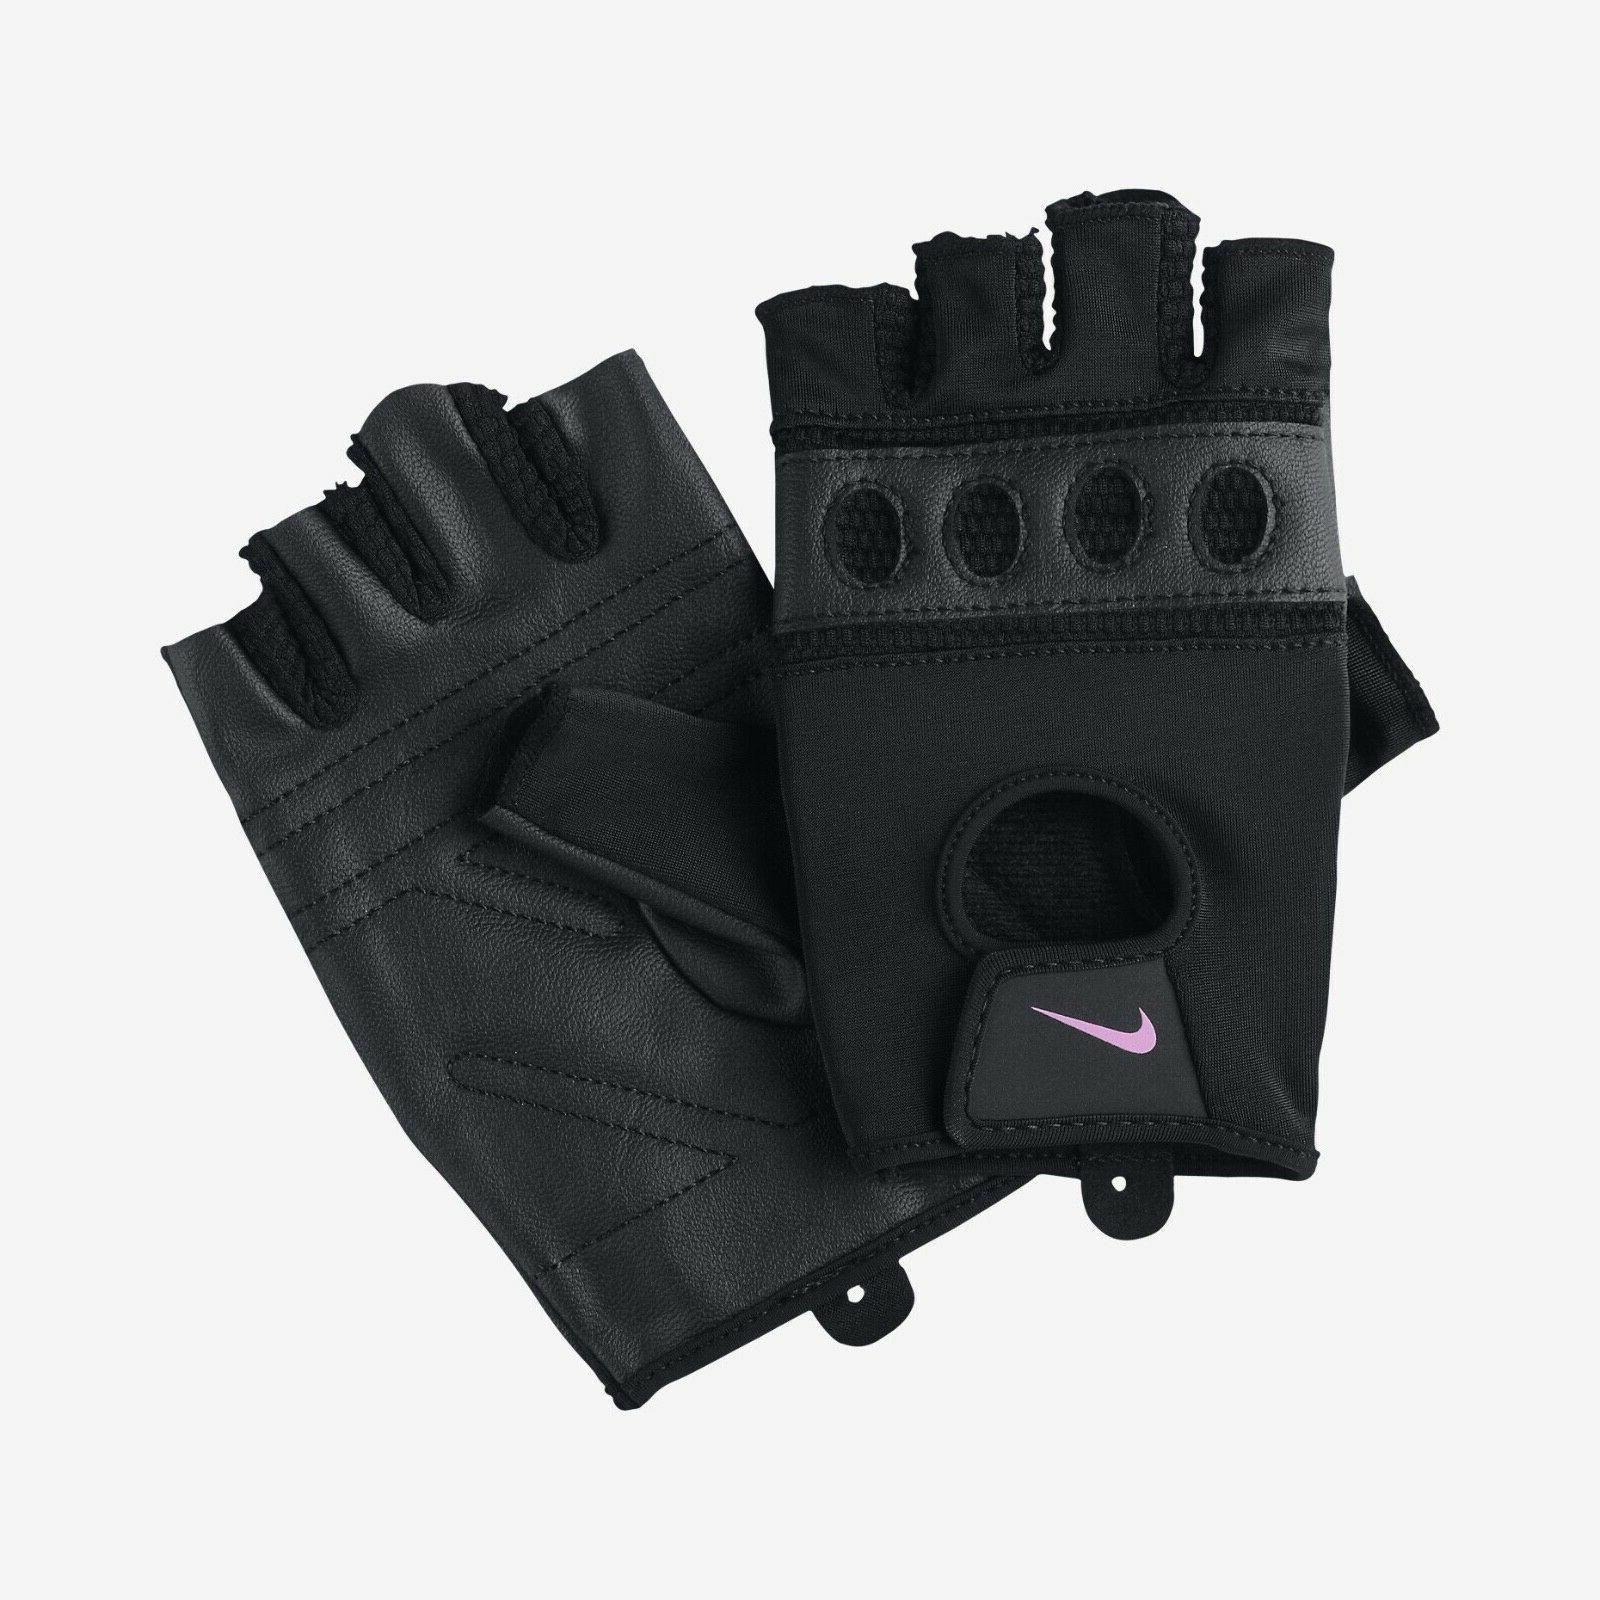 short finger training gloves mens women s